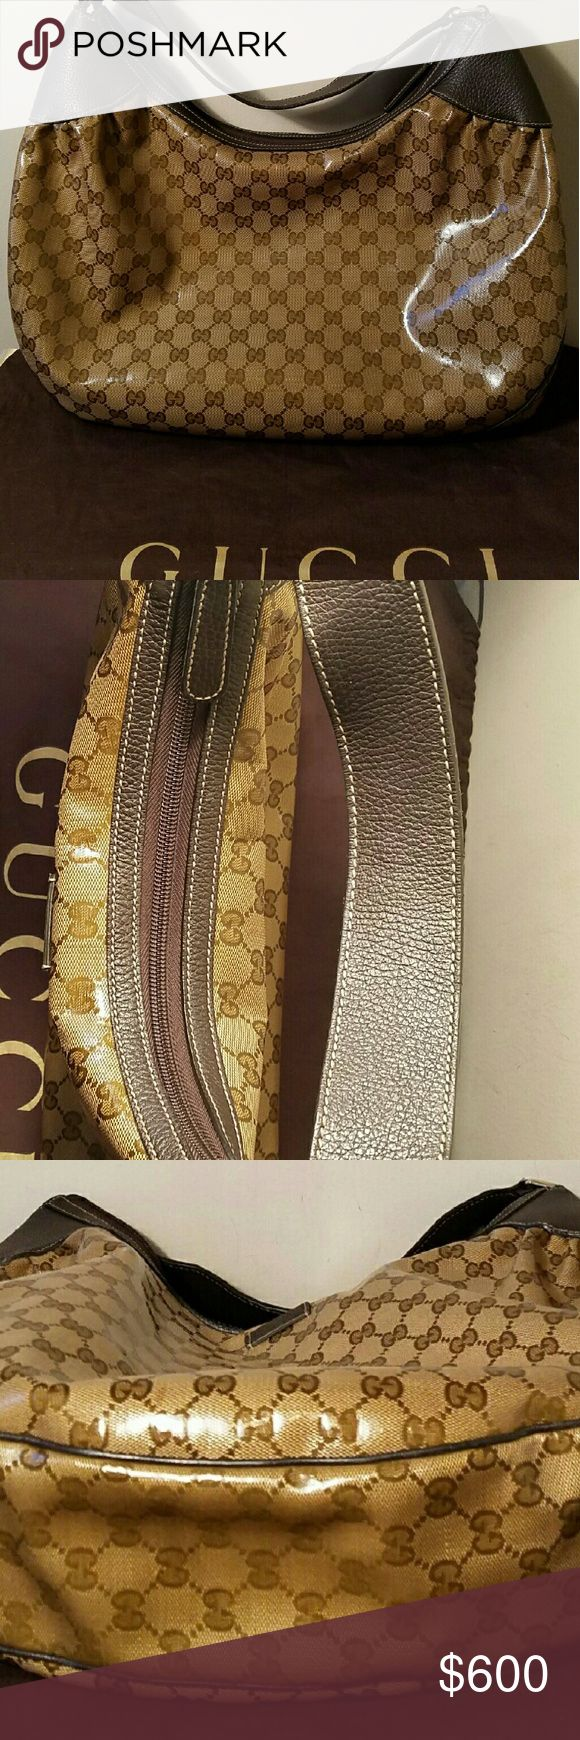 Authentic Gucci Hobo bag In excellent condition. Looks brand new. Better price elsewhere. Gucci Bags Shoulder Bags